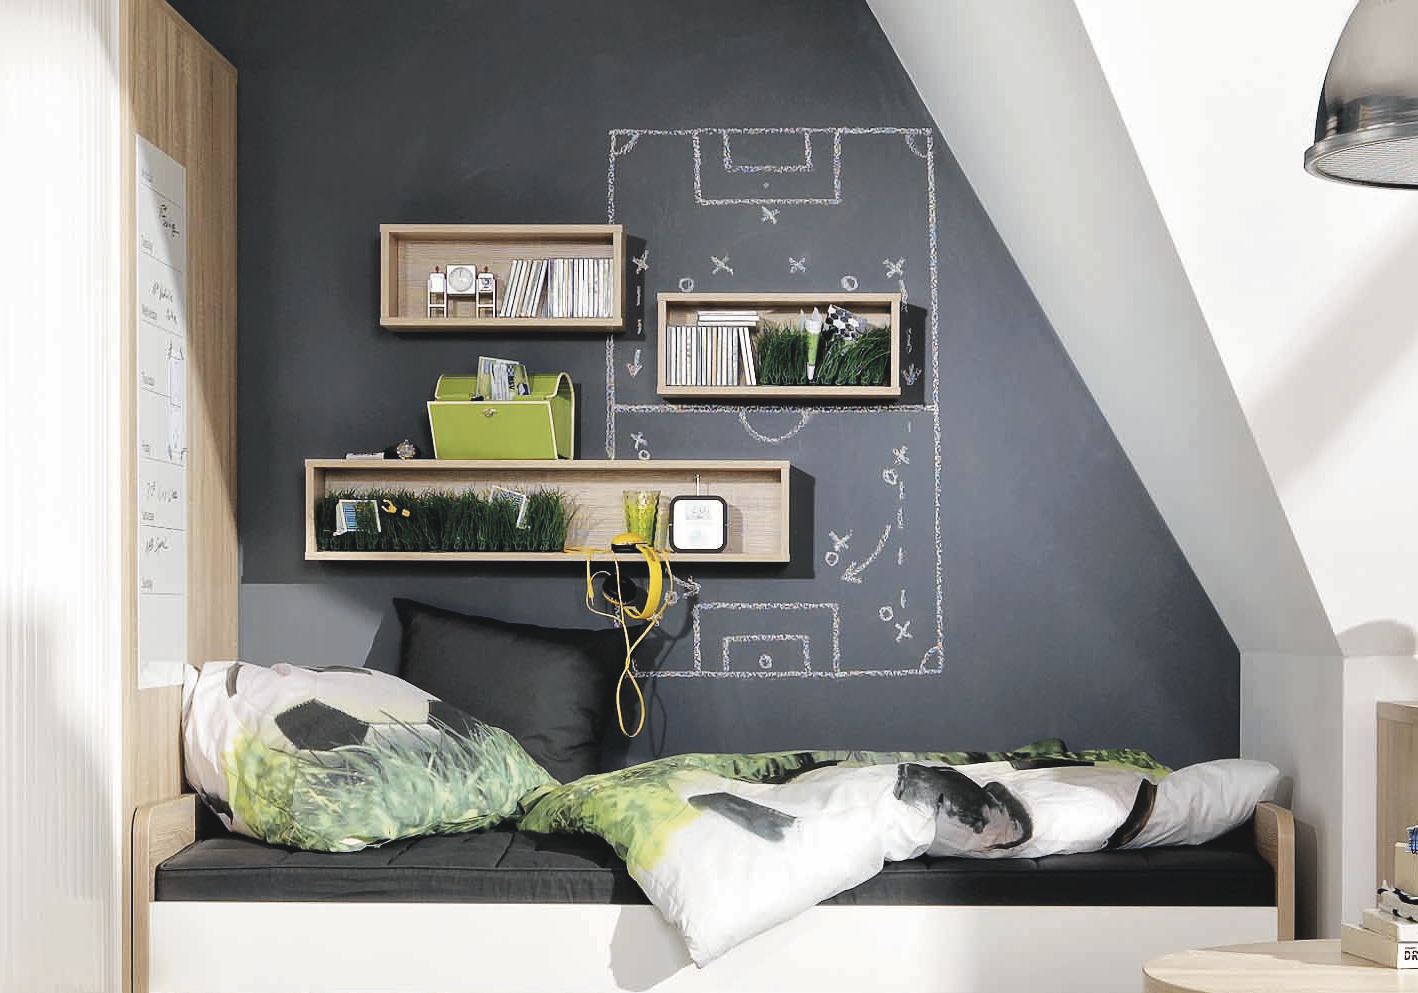 sch ner wohnen kinderzimmer. Black Bedroom Furniture Sets. Home Design Ideas